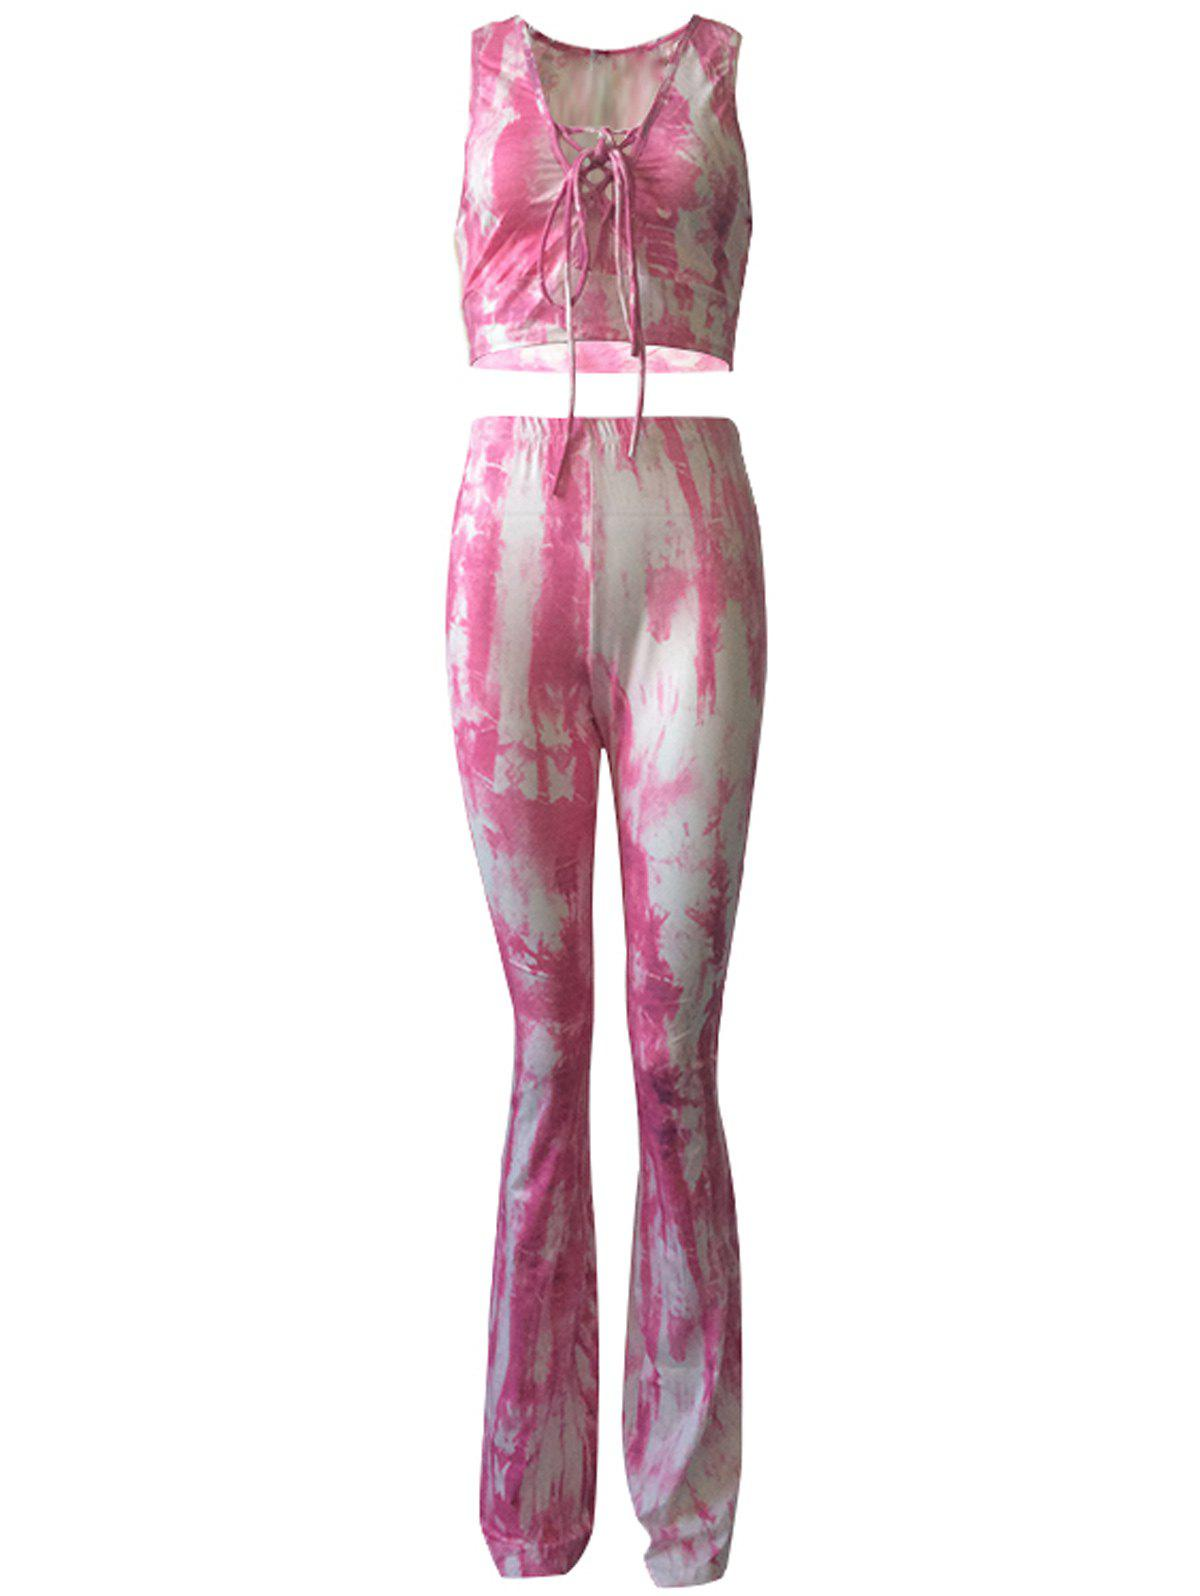 Casual Lace Up Tank Top and Tie Dye Pants Set For Women